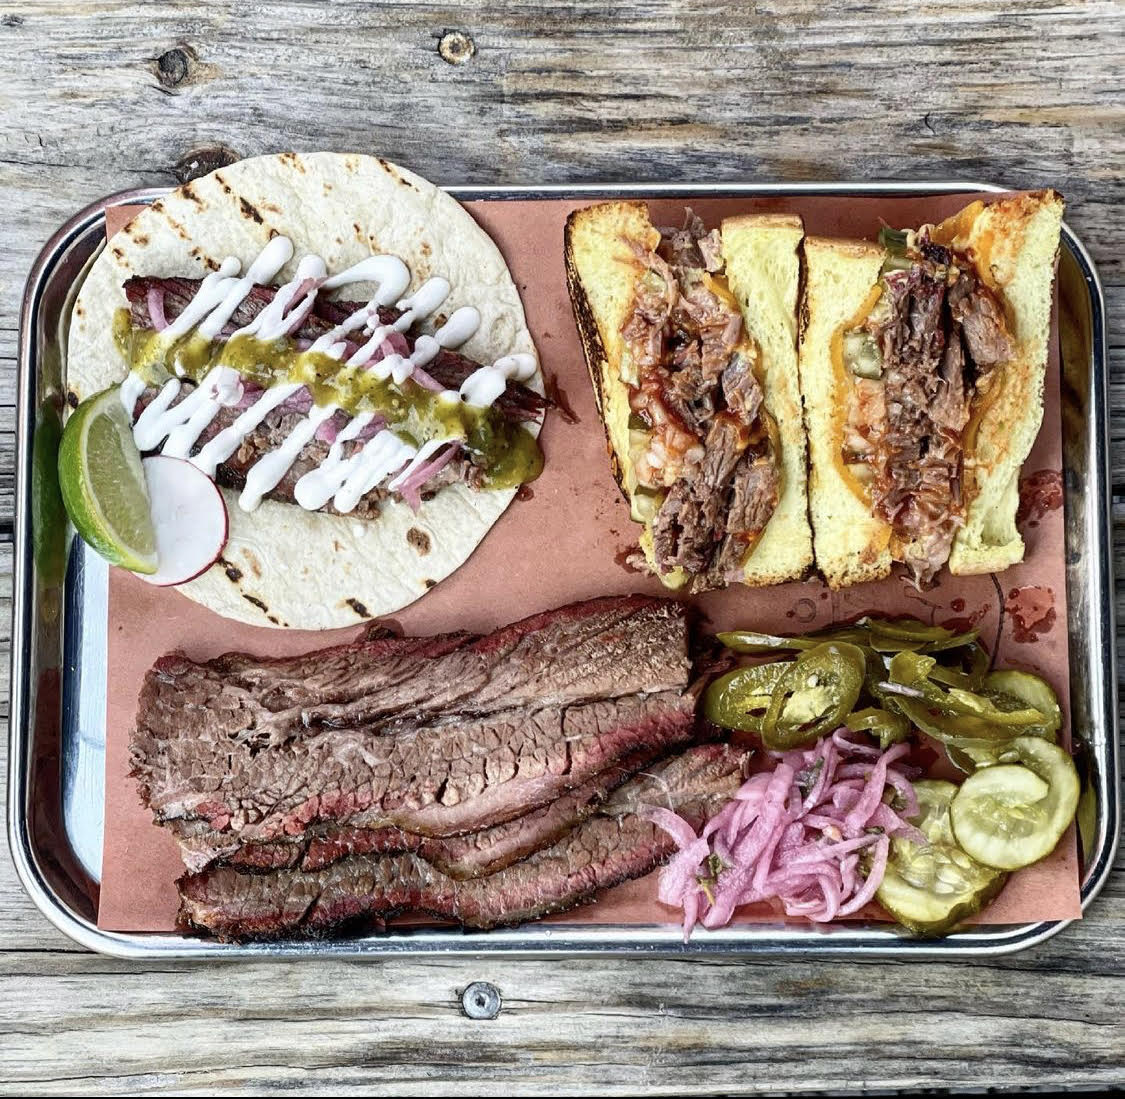 Smoked brisket, brisket tacos and sandwich from Hamilton Pork in Jersey City